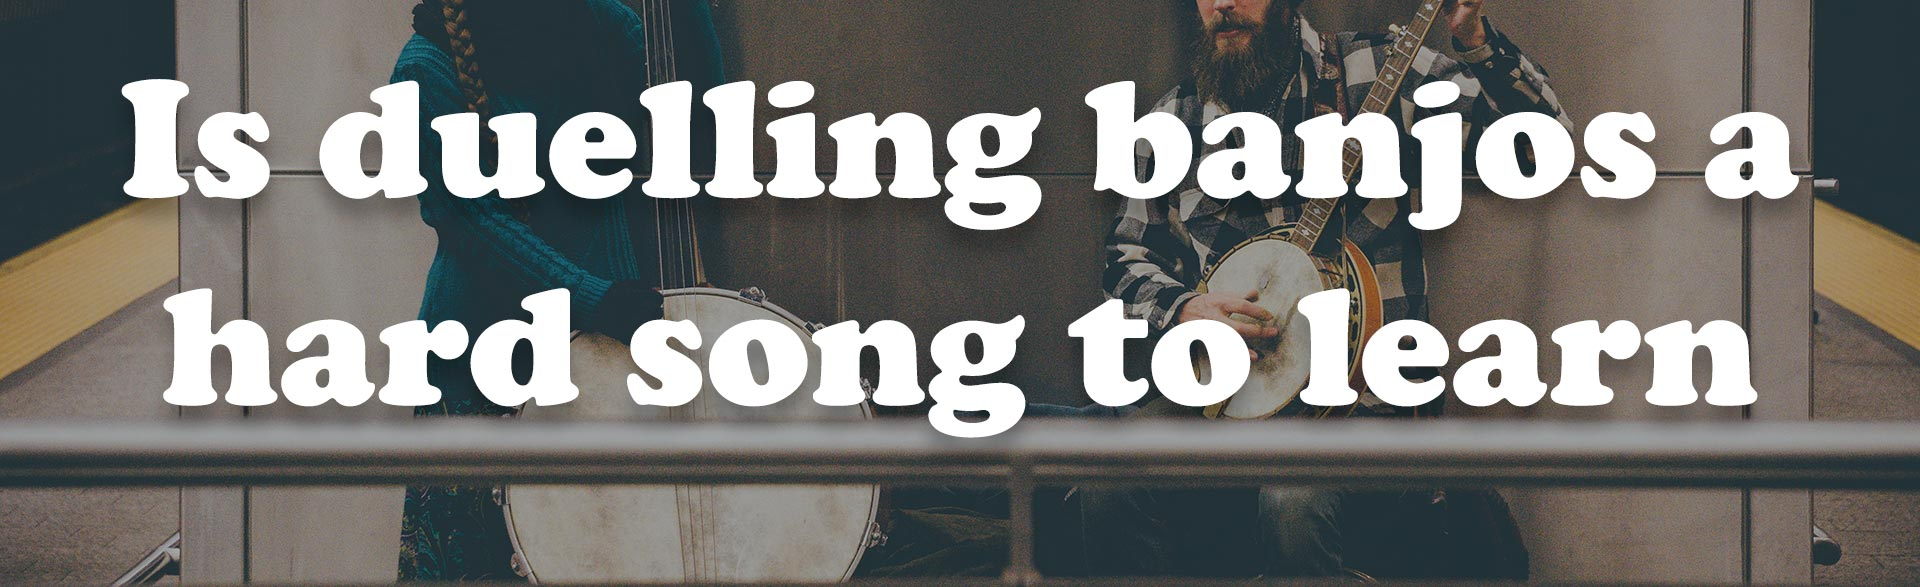 Post Thumbnail for the Post: Is duelling banjos a hard song to learn Viewable at https://jofflowson.com/how-hard-duelling-banjos